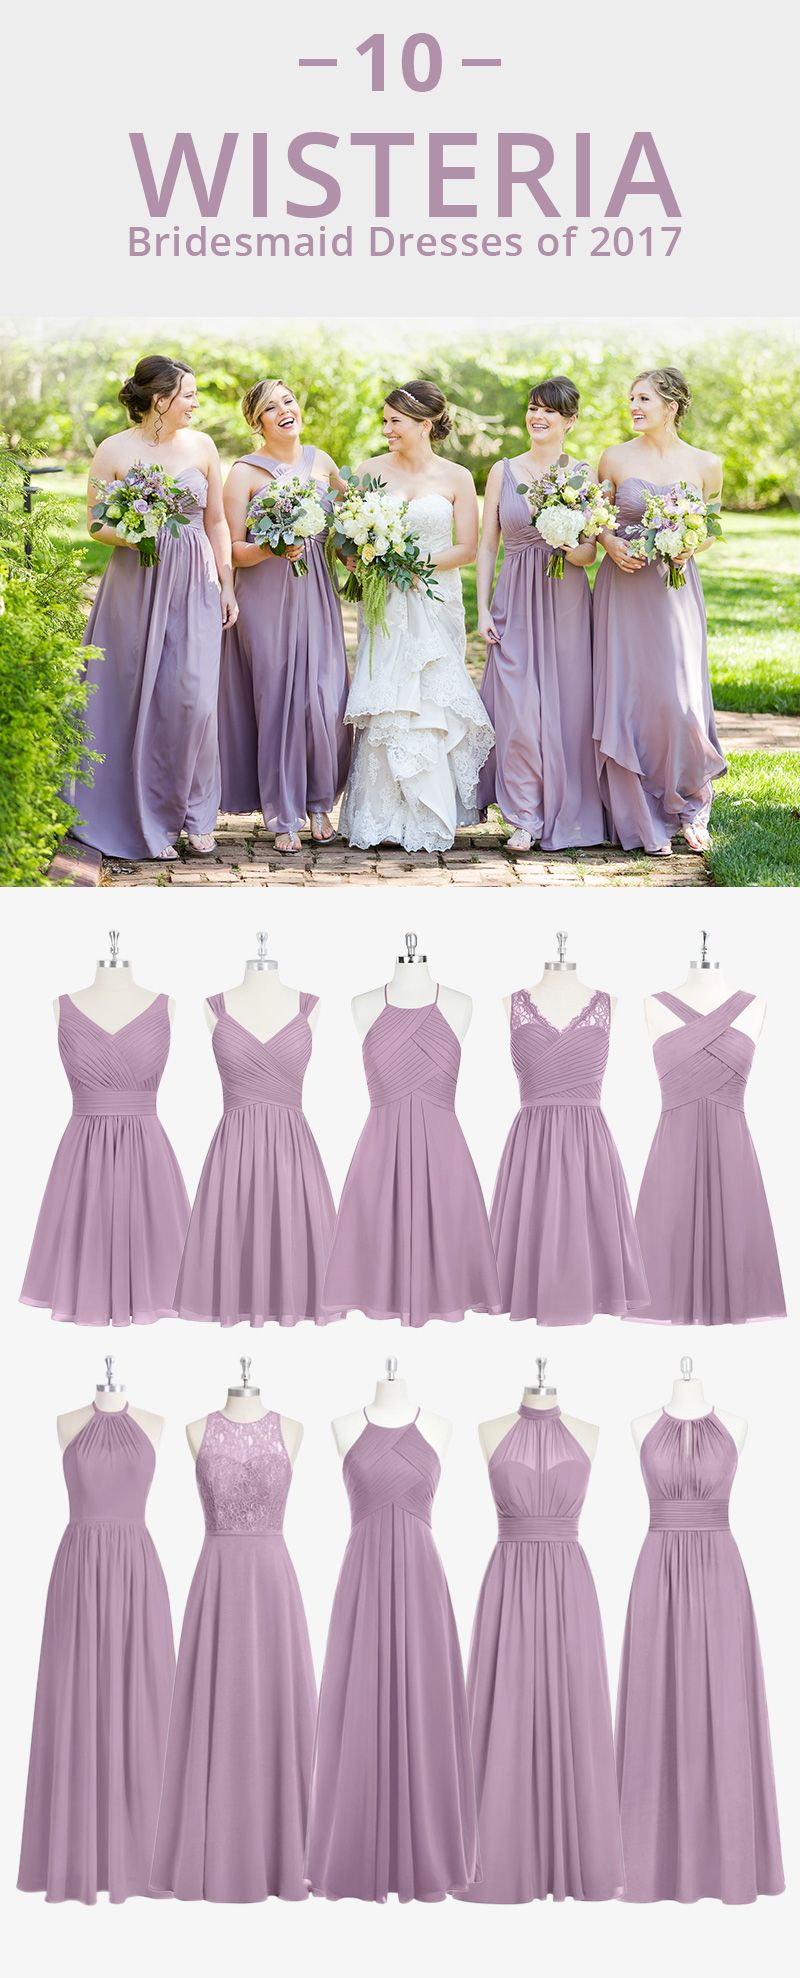 Dress Your Bridesmaid In This Romantic Soft Purple Available In Sizes 0 30 And Wisteria Bridesmaid Dresses Lilac Bridesmaid Dresses Wedding Bridesmaid Dresses